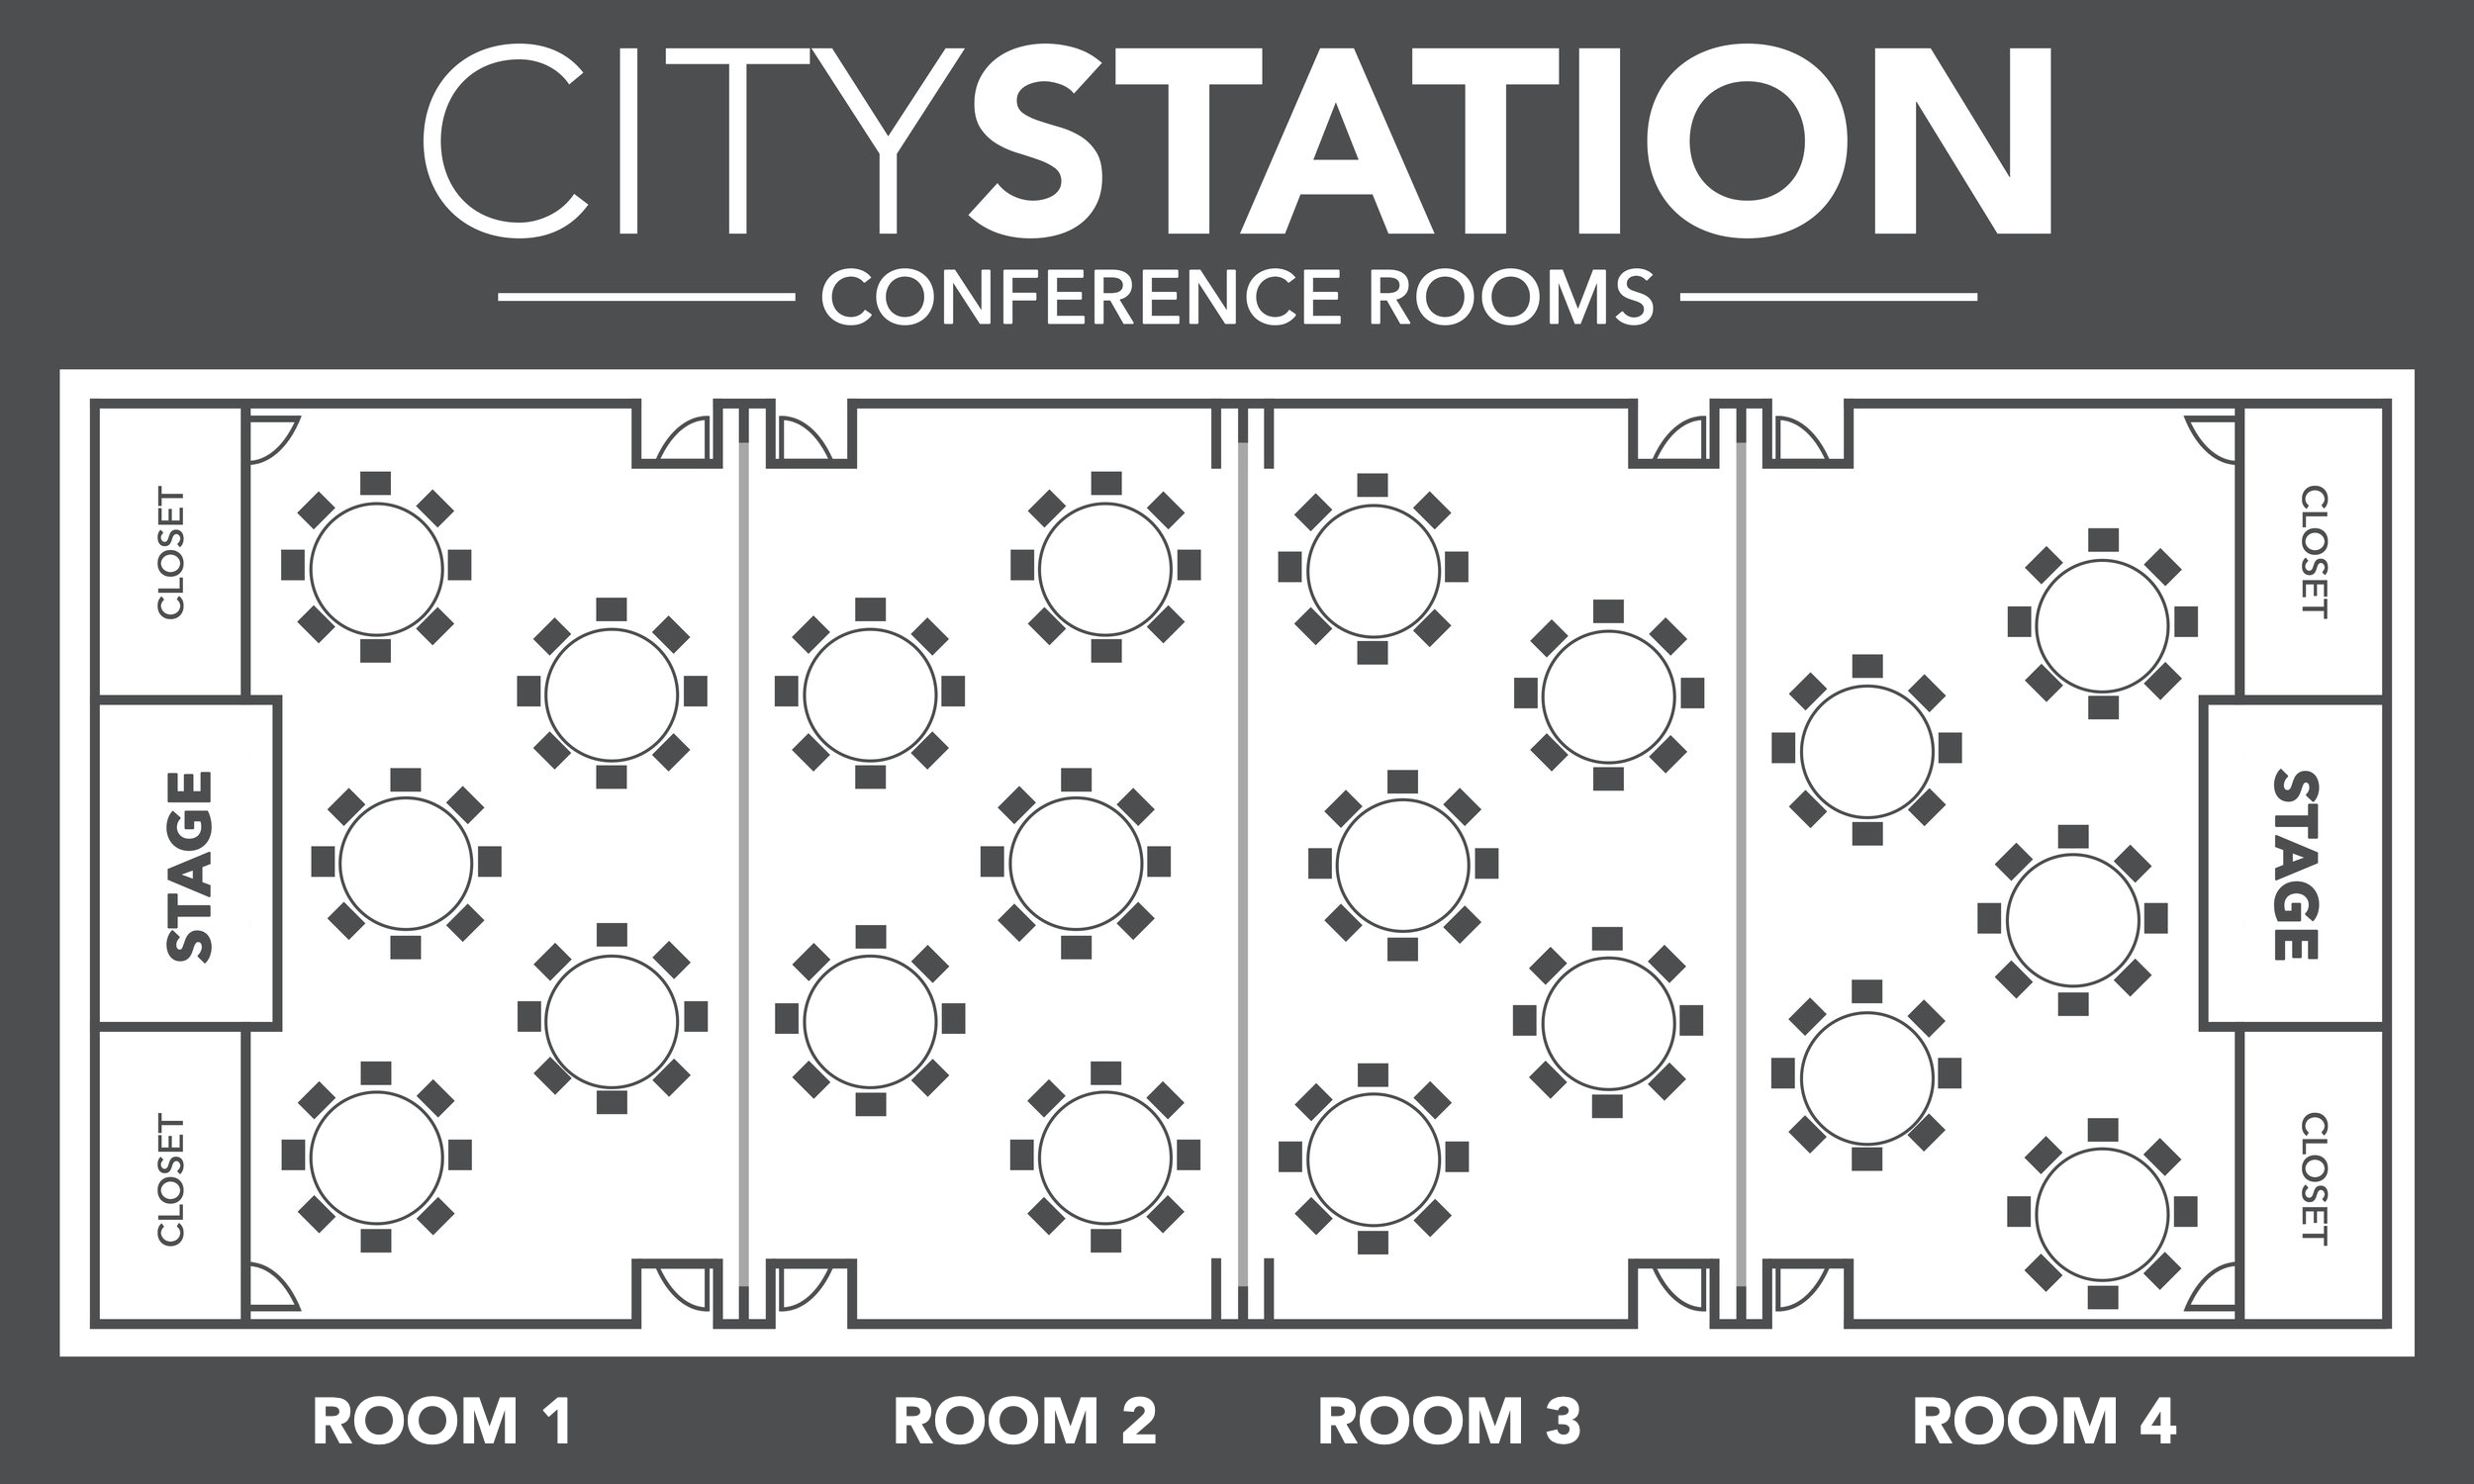 conference-rooms_layout-3.jpg